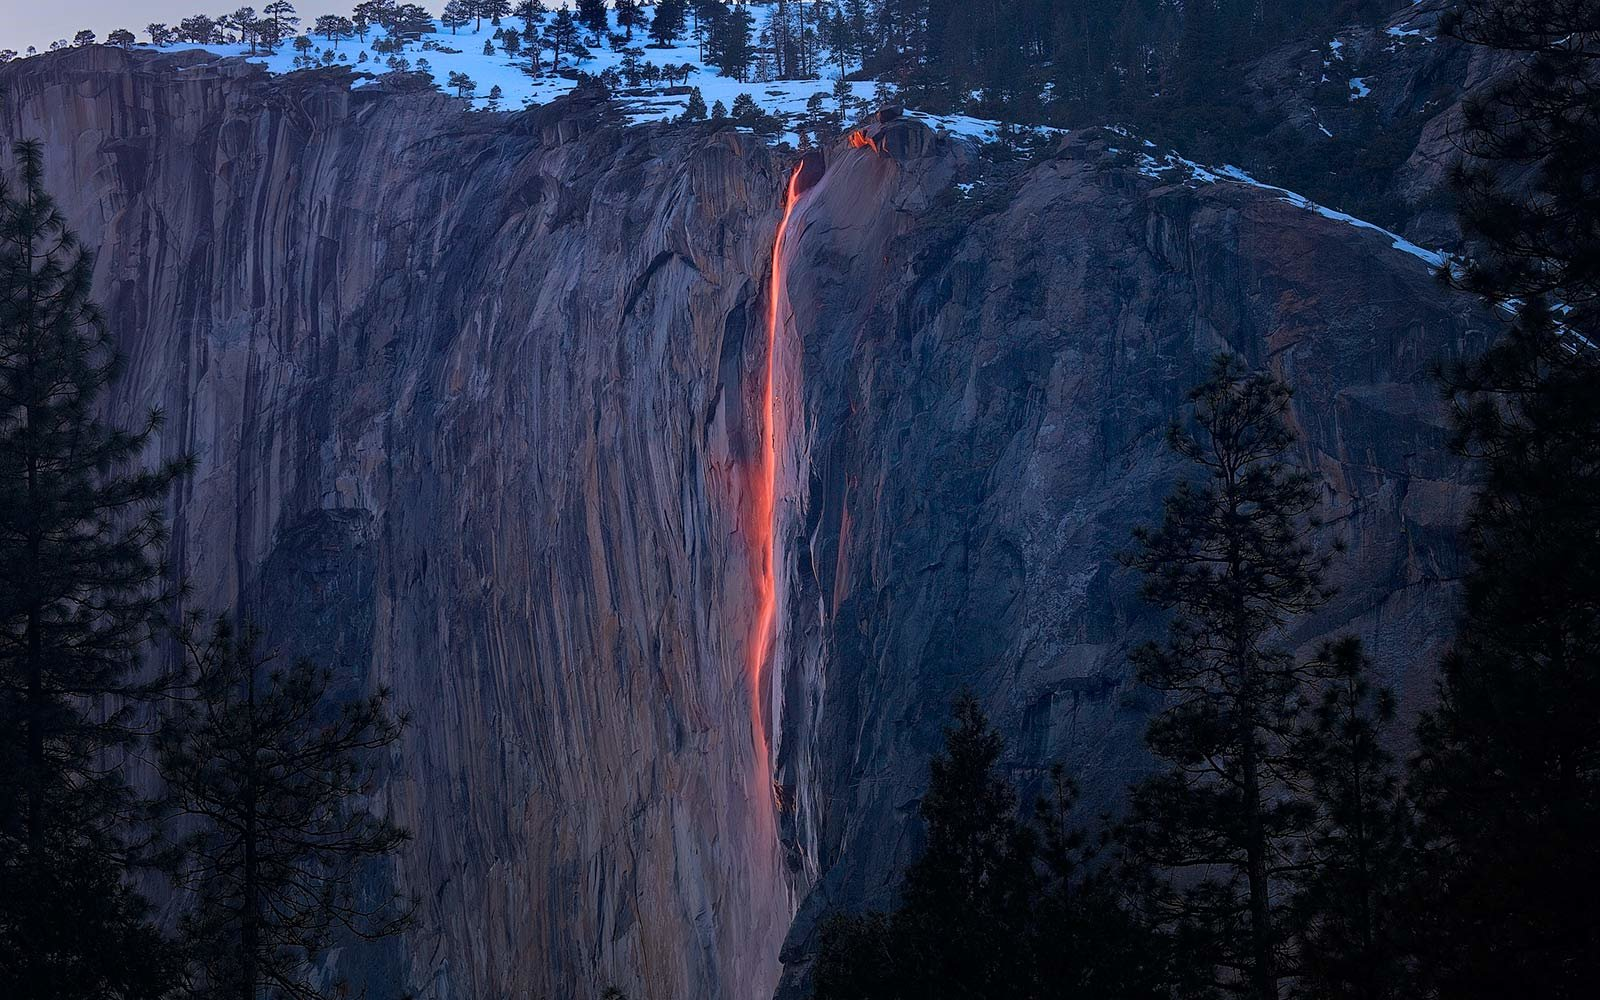 The Fire Falls, Yosemite National Park, California